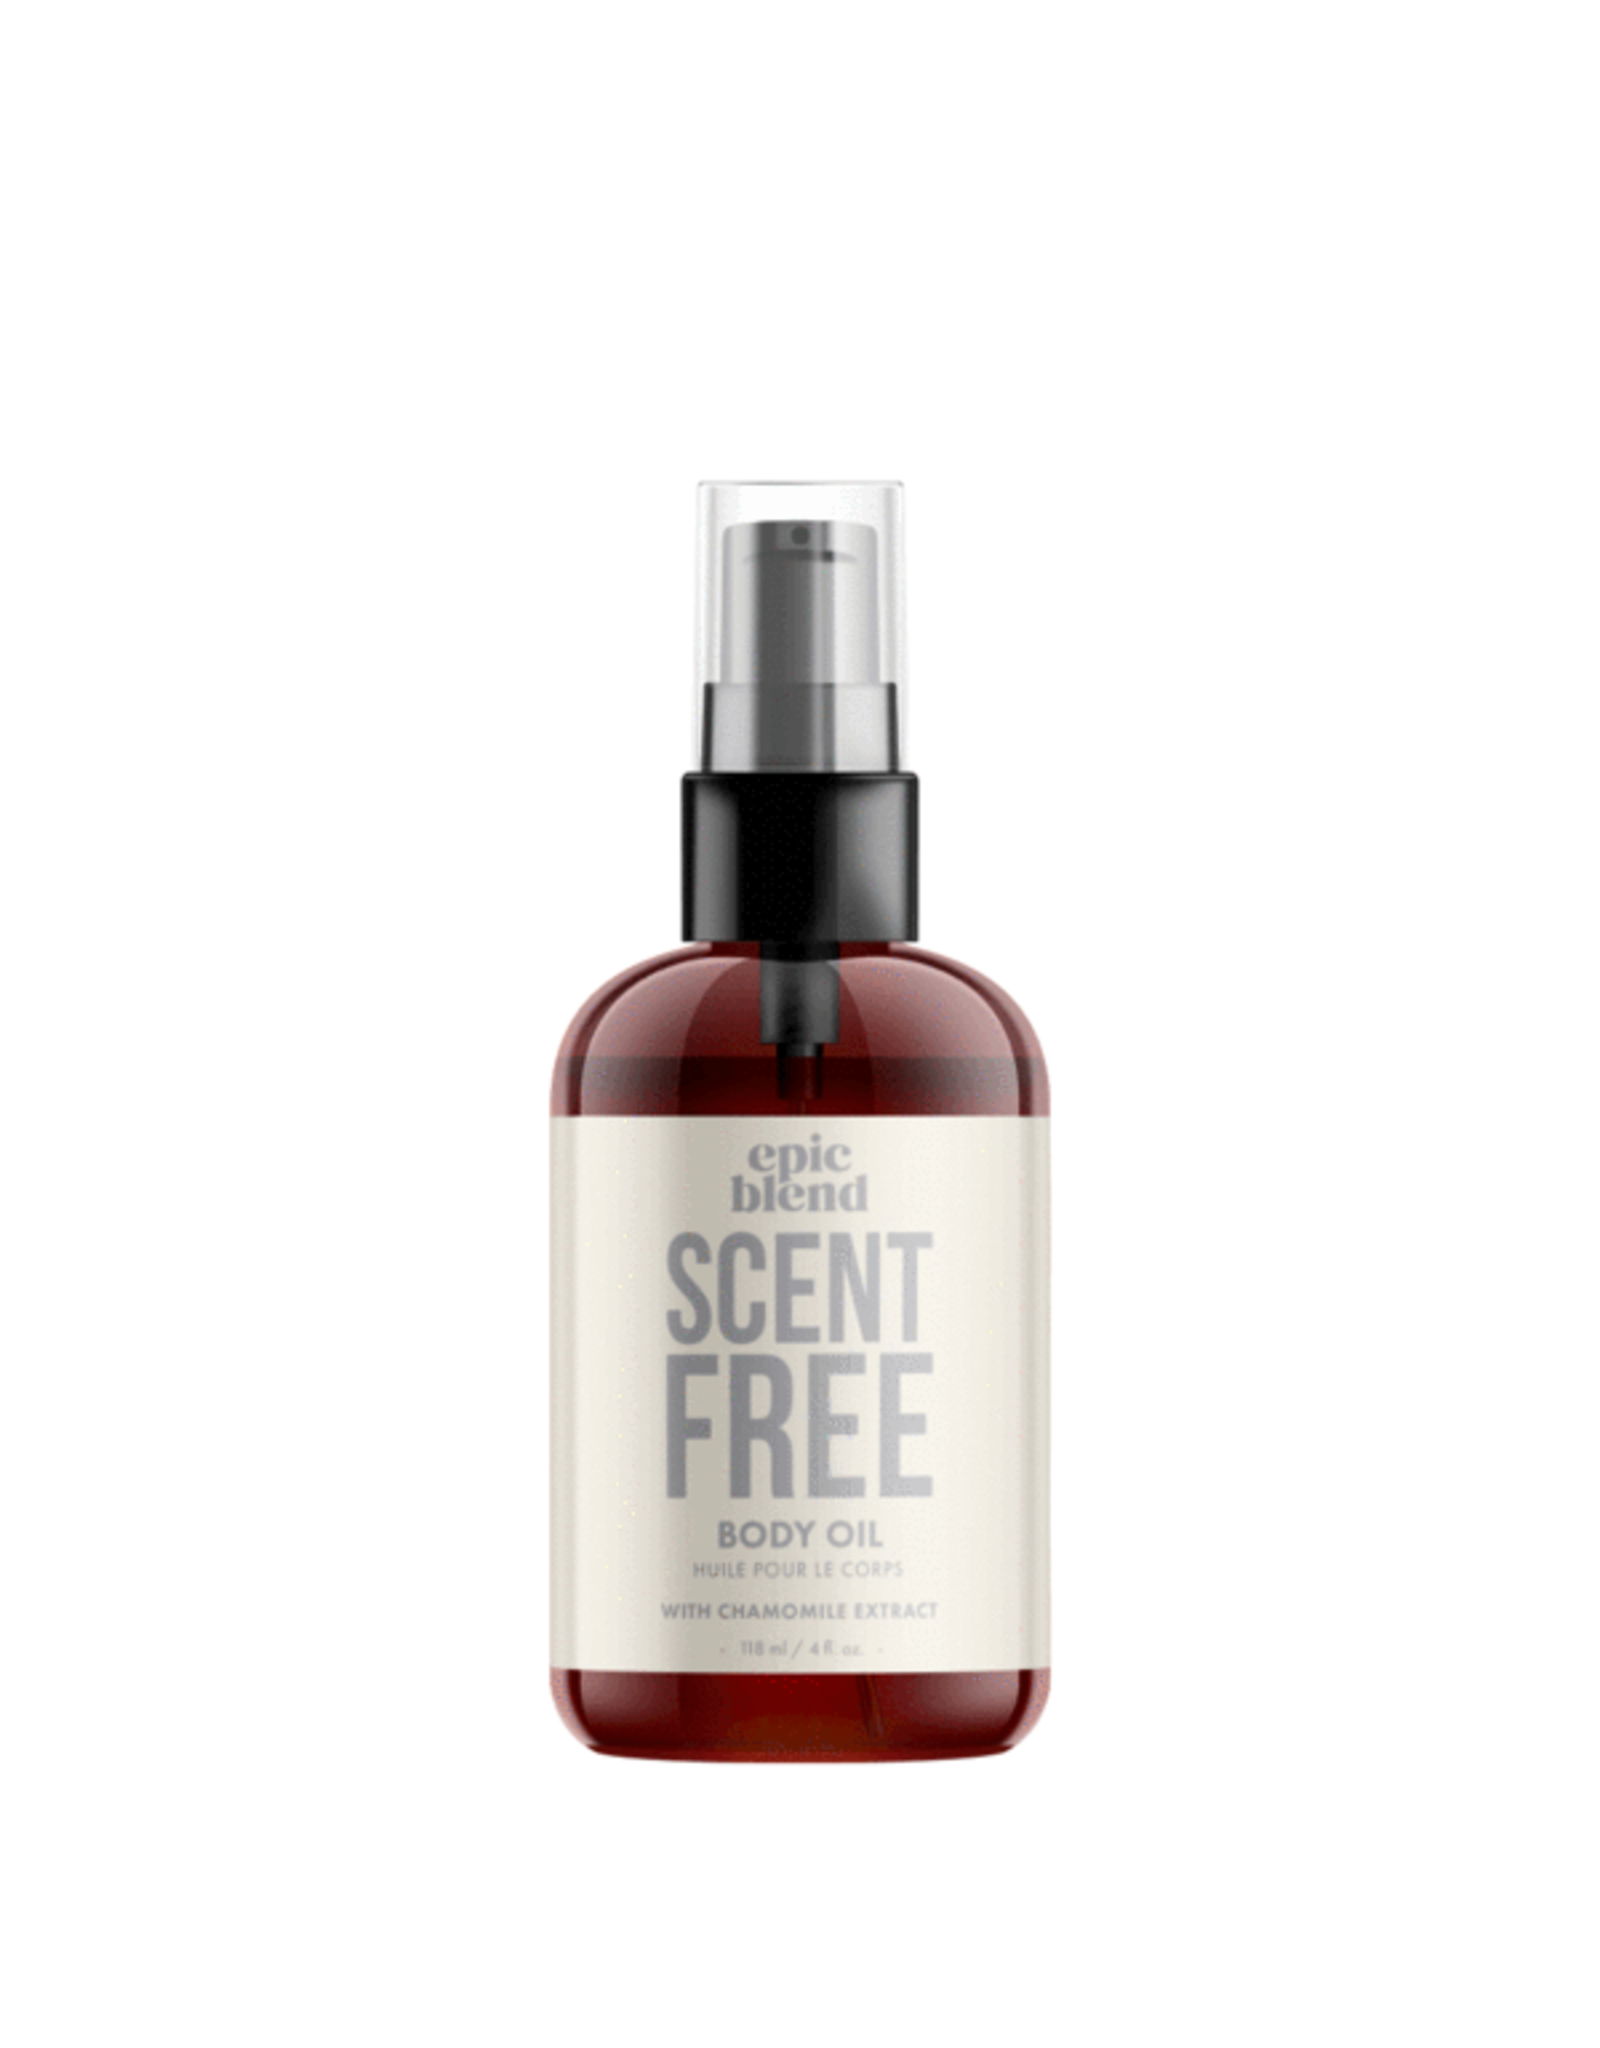 Epic Blend Scent Free Body Oil